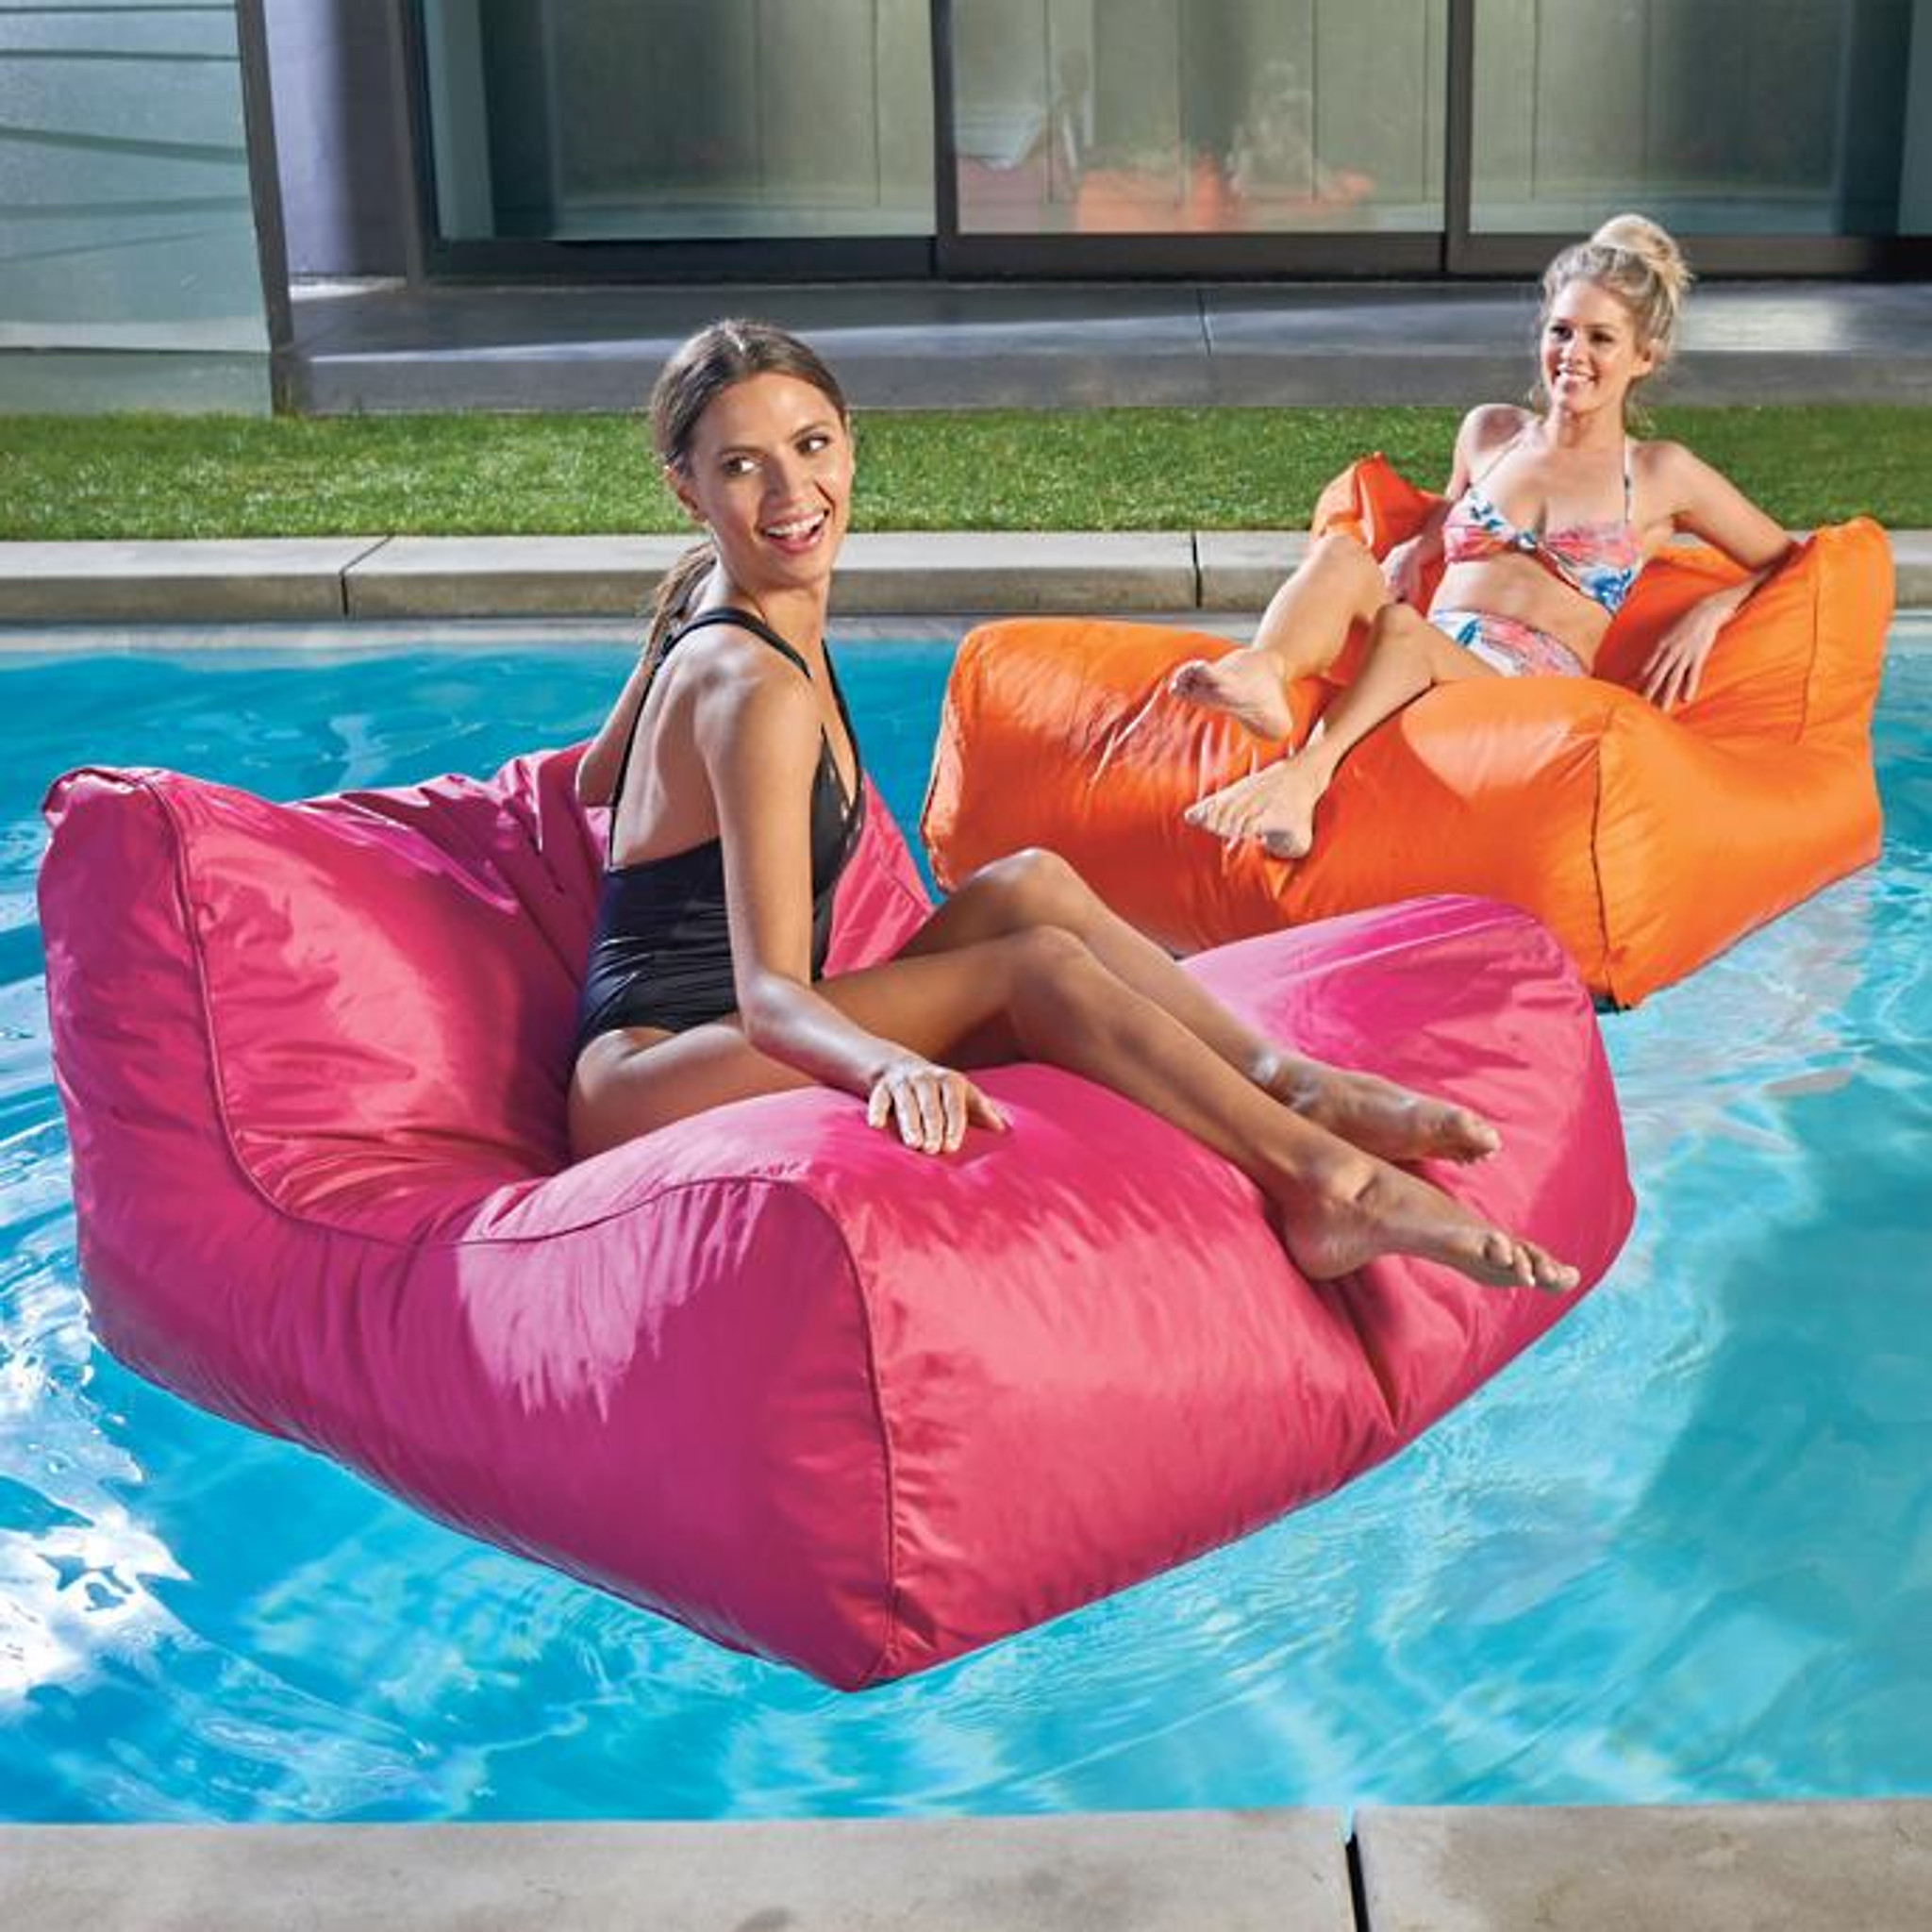 Stupendous Sitinpool Sofa Pool Float Unemploymentrelief Wooden Chair Designs For Living Room Unemploymentrelieforg